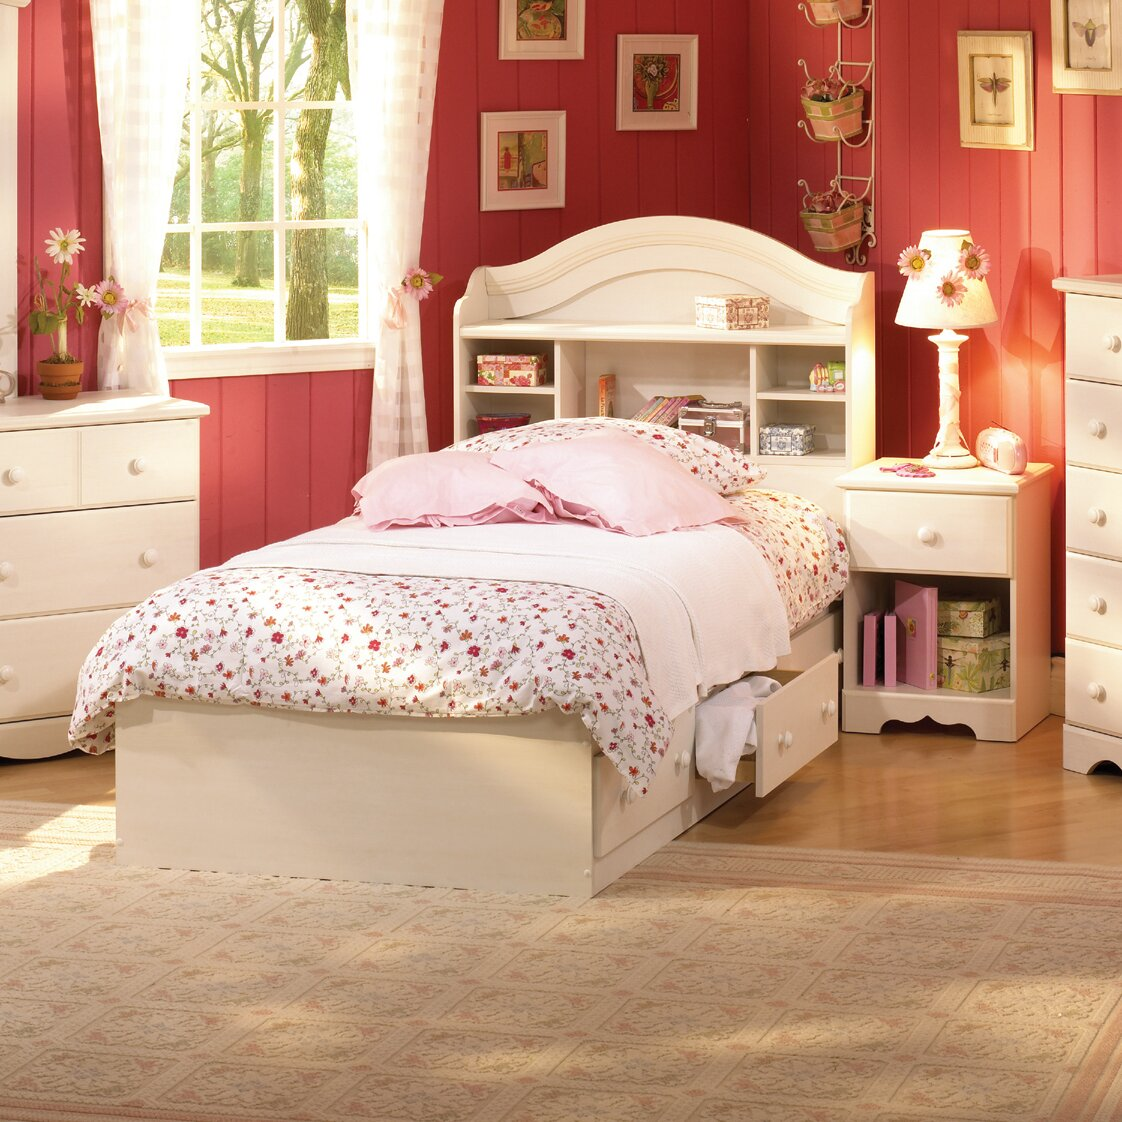 South Shore Bedroom Furniture South Shore Summer Breeze Platform Customizable Bedroom Set